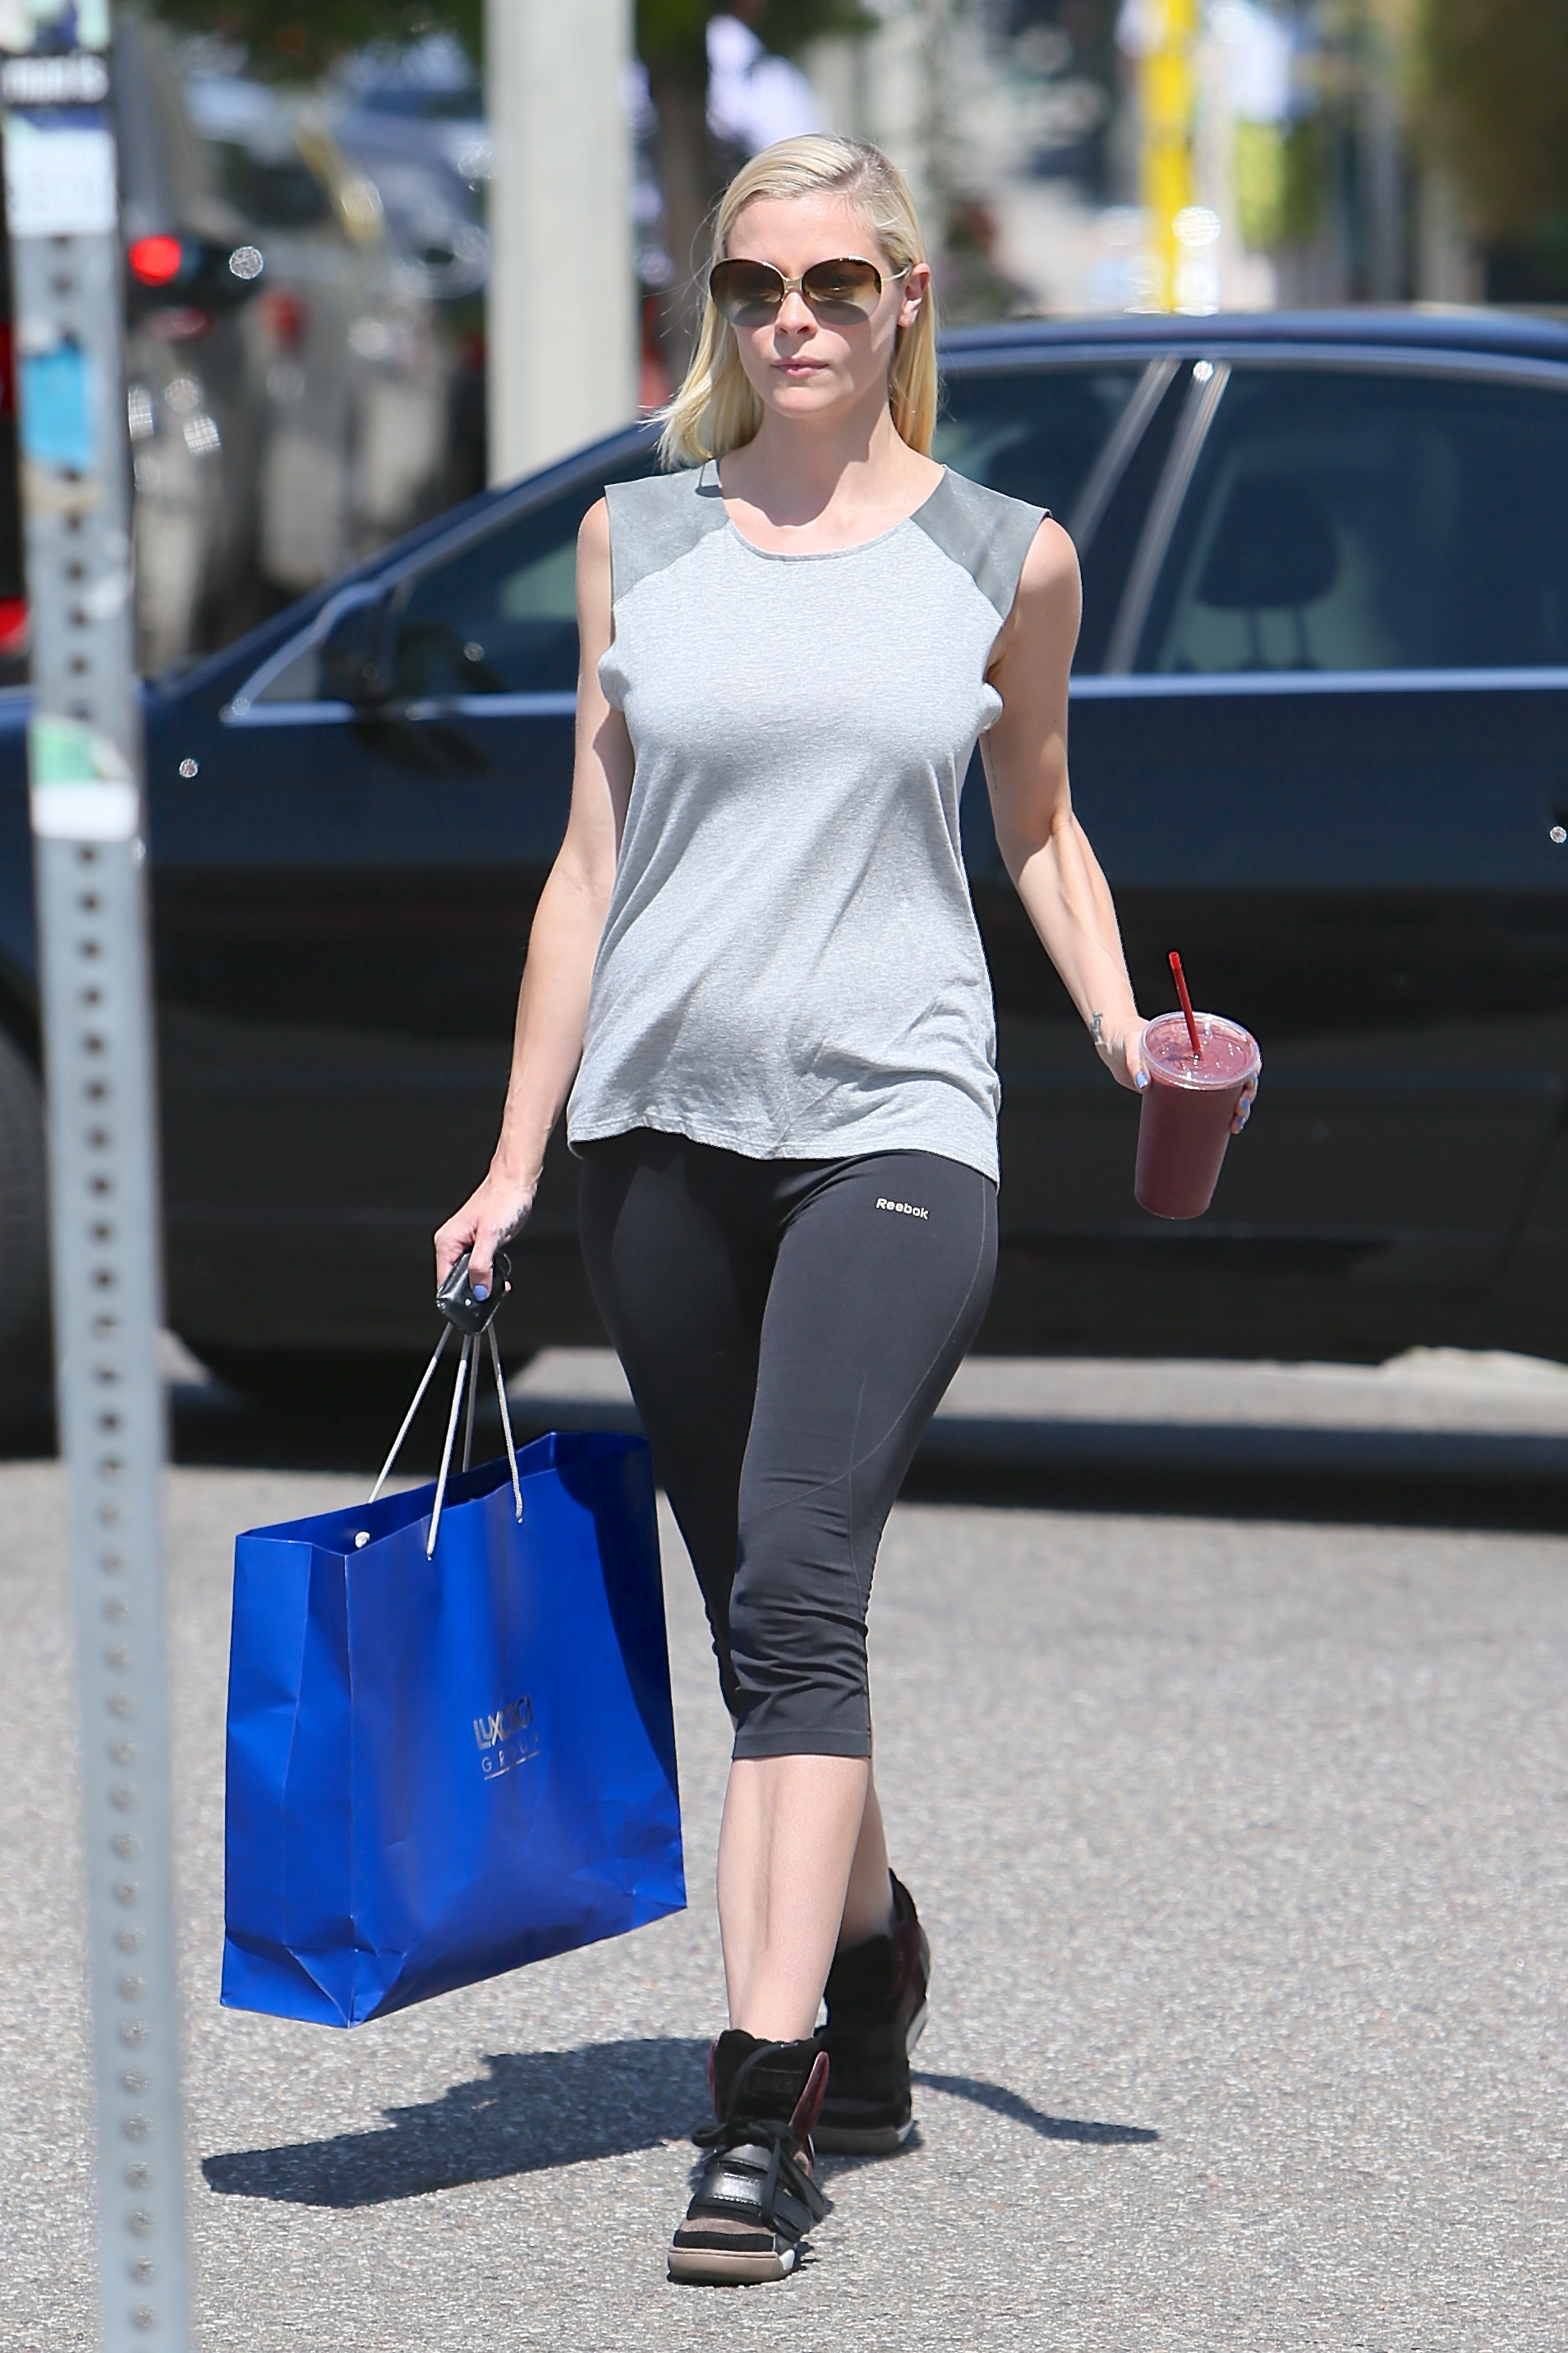 A pregnant Jaime King is seen arriving and leaving her pilates class at Winsor Pilates  Featuring: Jaime King Where: Los Angeles, CA, United States When: 17 Jun 2013 Credit: Michael Wright/WENN.com